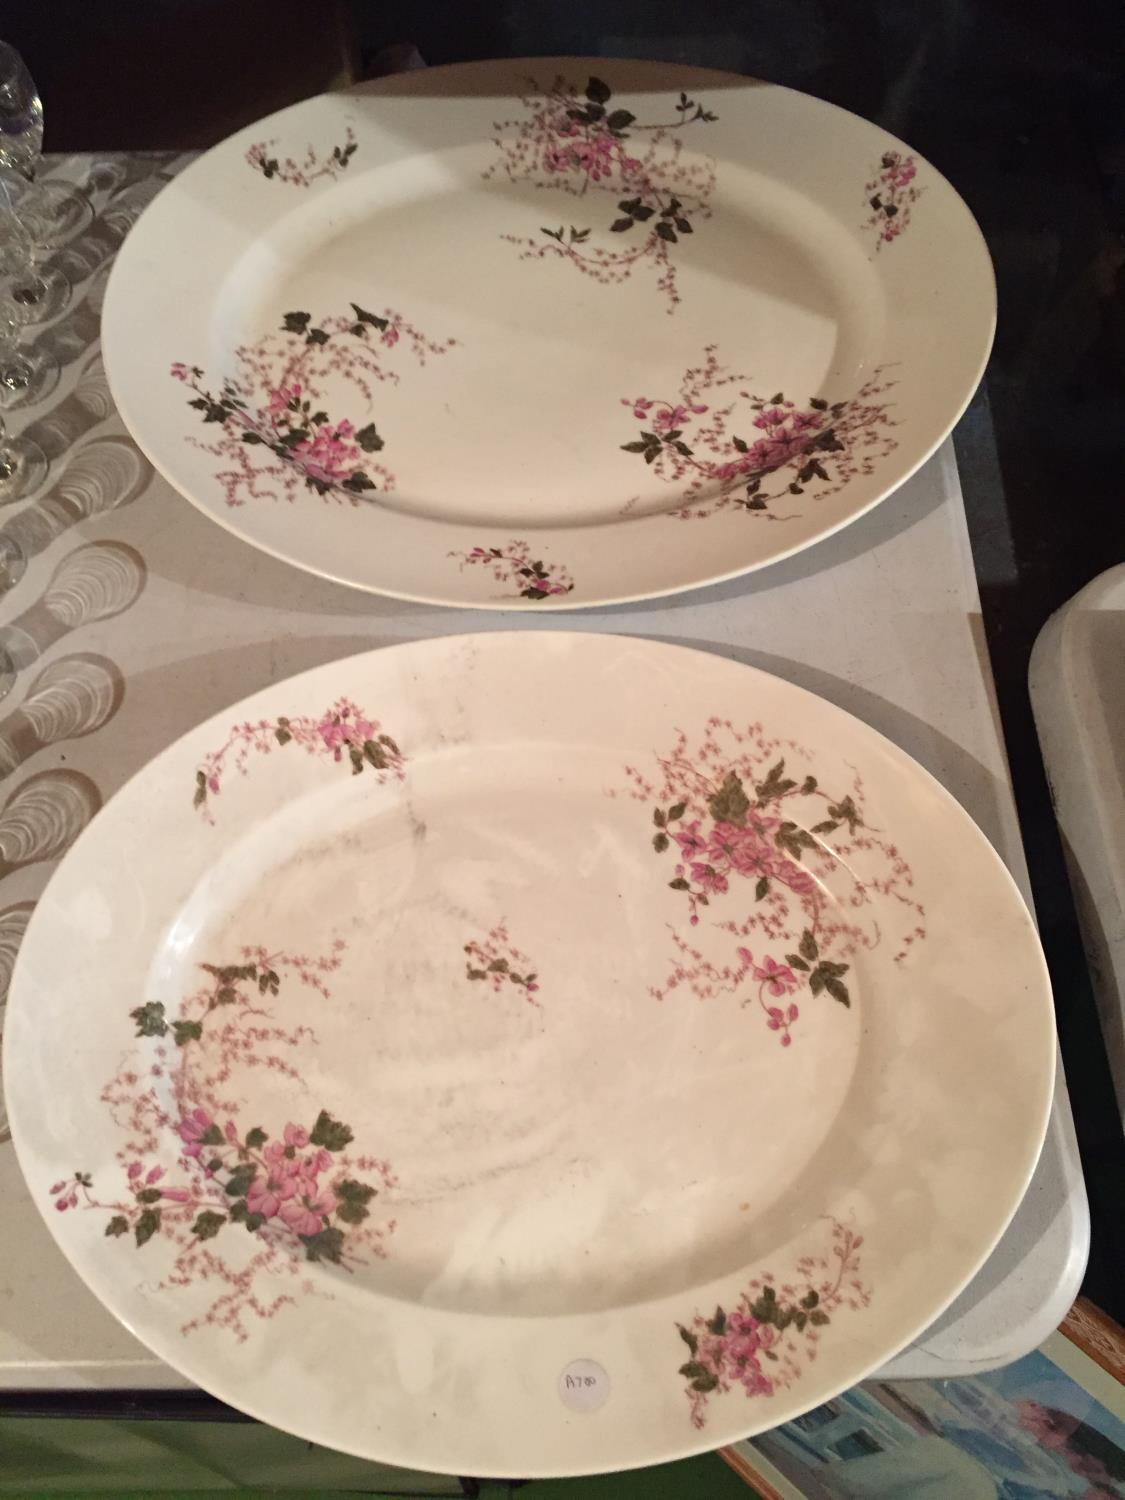 TWO LARGE HEAVY CERAMIC MEAT PLATTERS WITH A DELICATE PINK FLOWER DESIGN